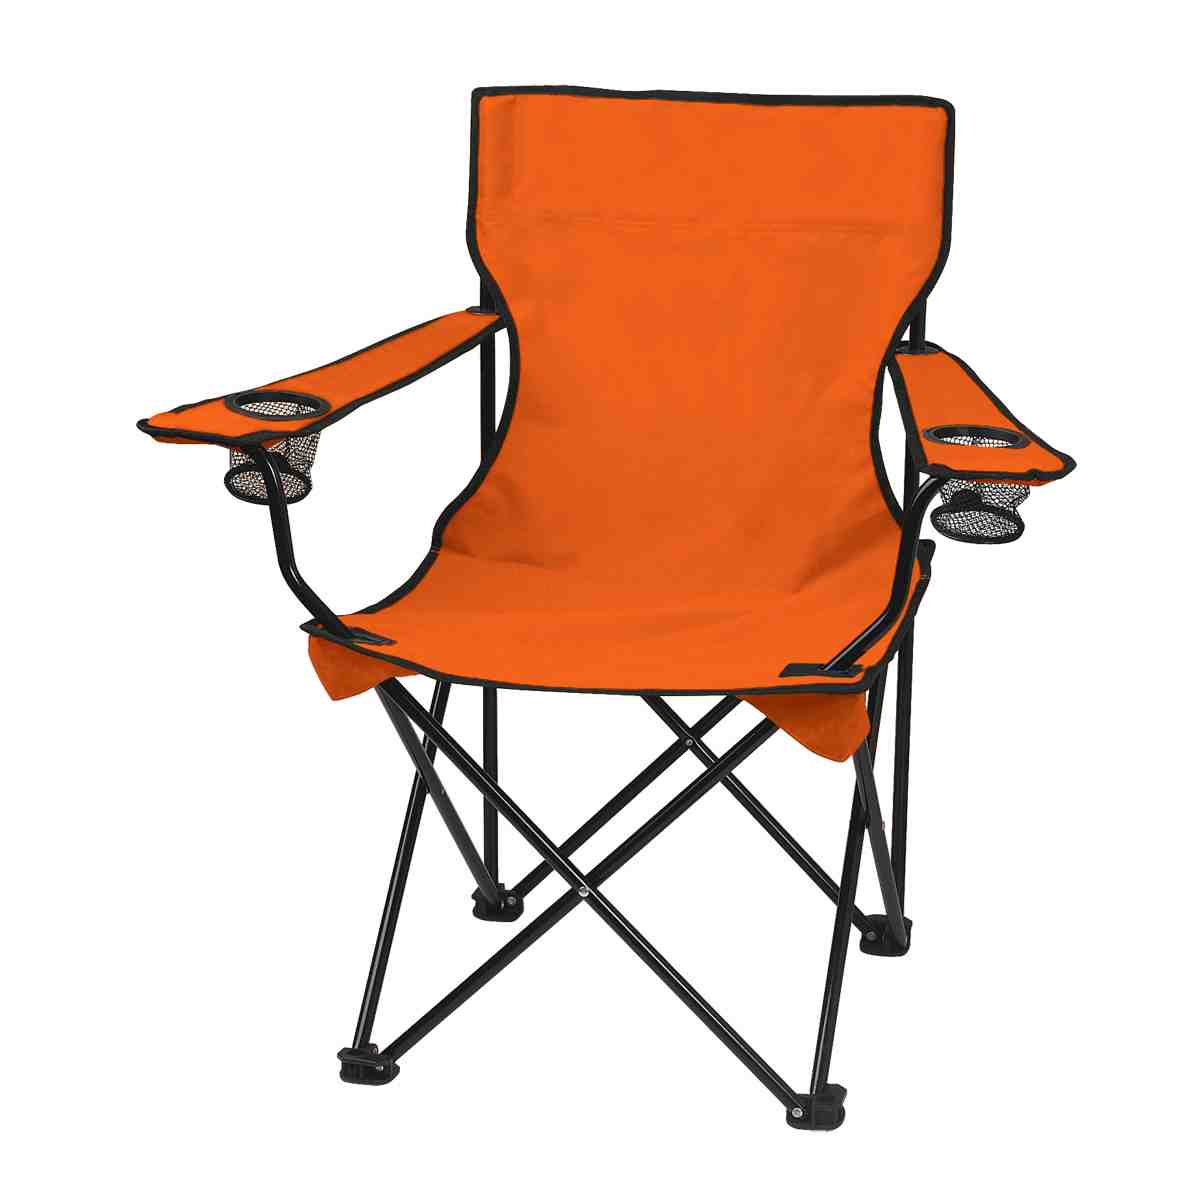 Outdoor Folding Chairs How to Buy the Best for all